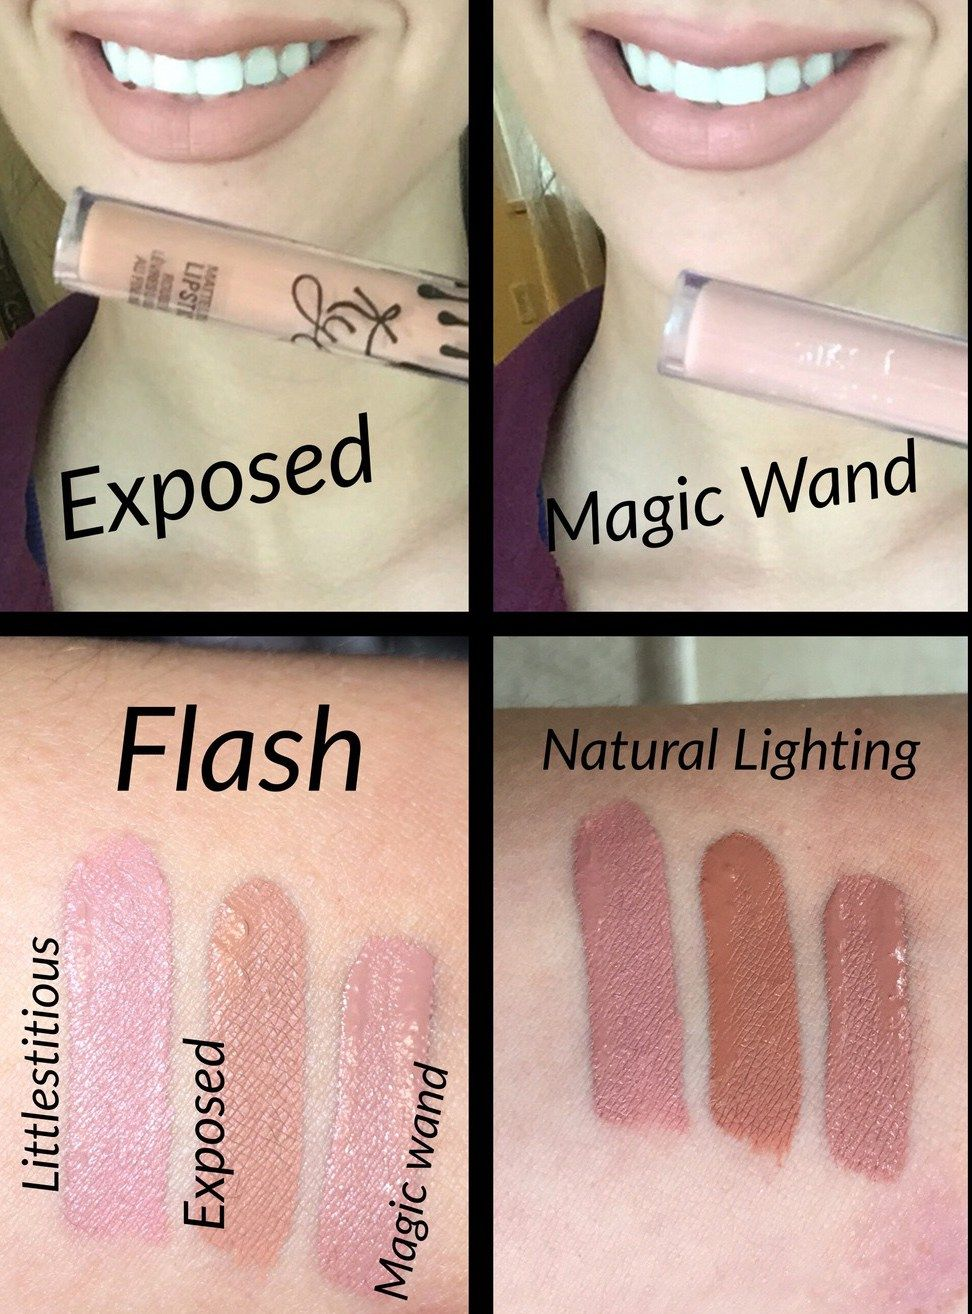 Colourpop Kylie Cosmetics: Colourpop Magic Wand And Kylie Exposed Lipstick Dupe